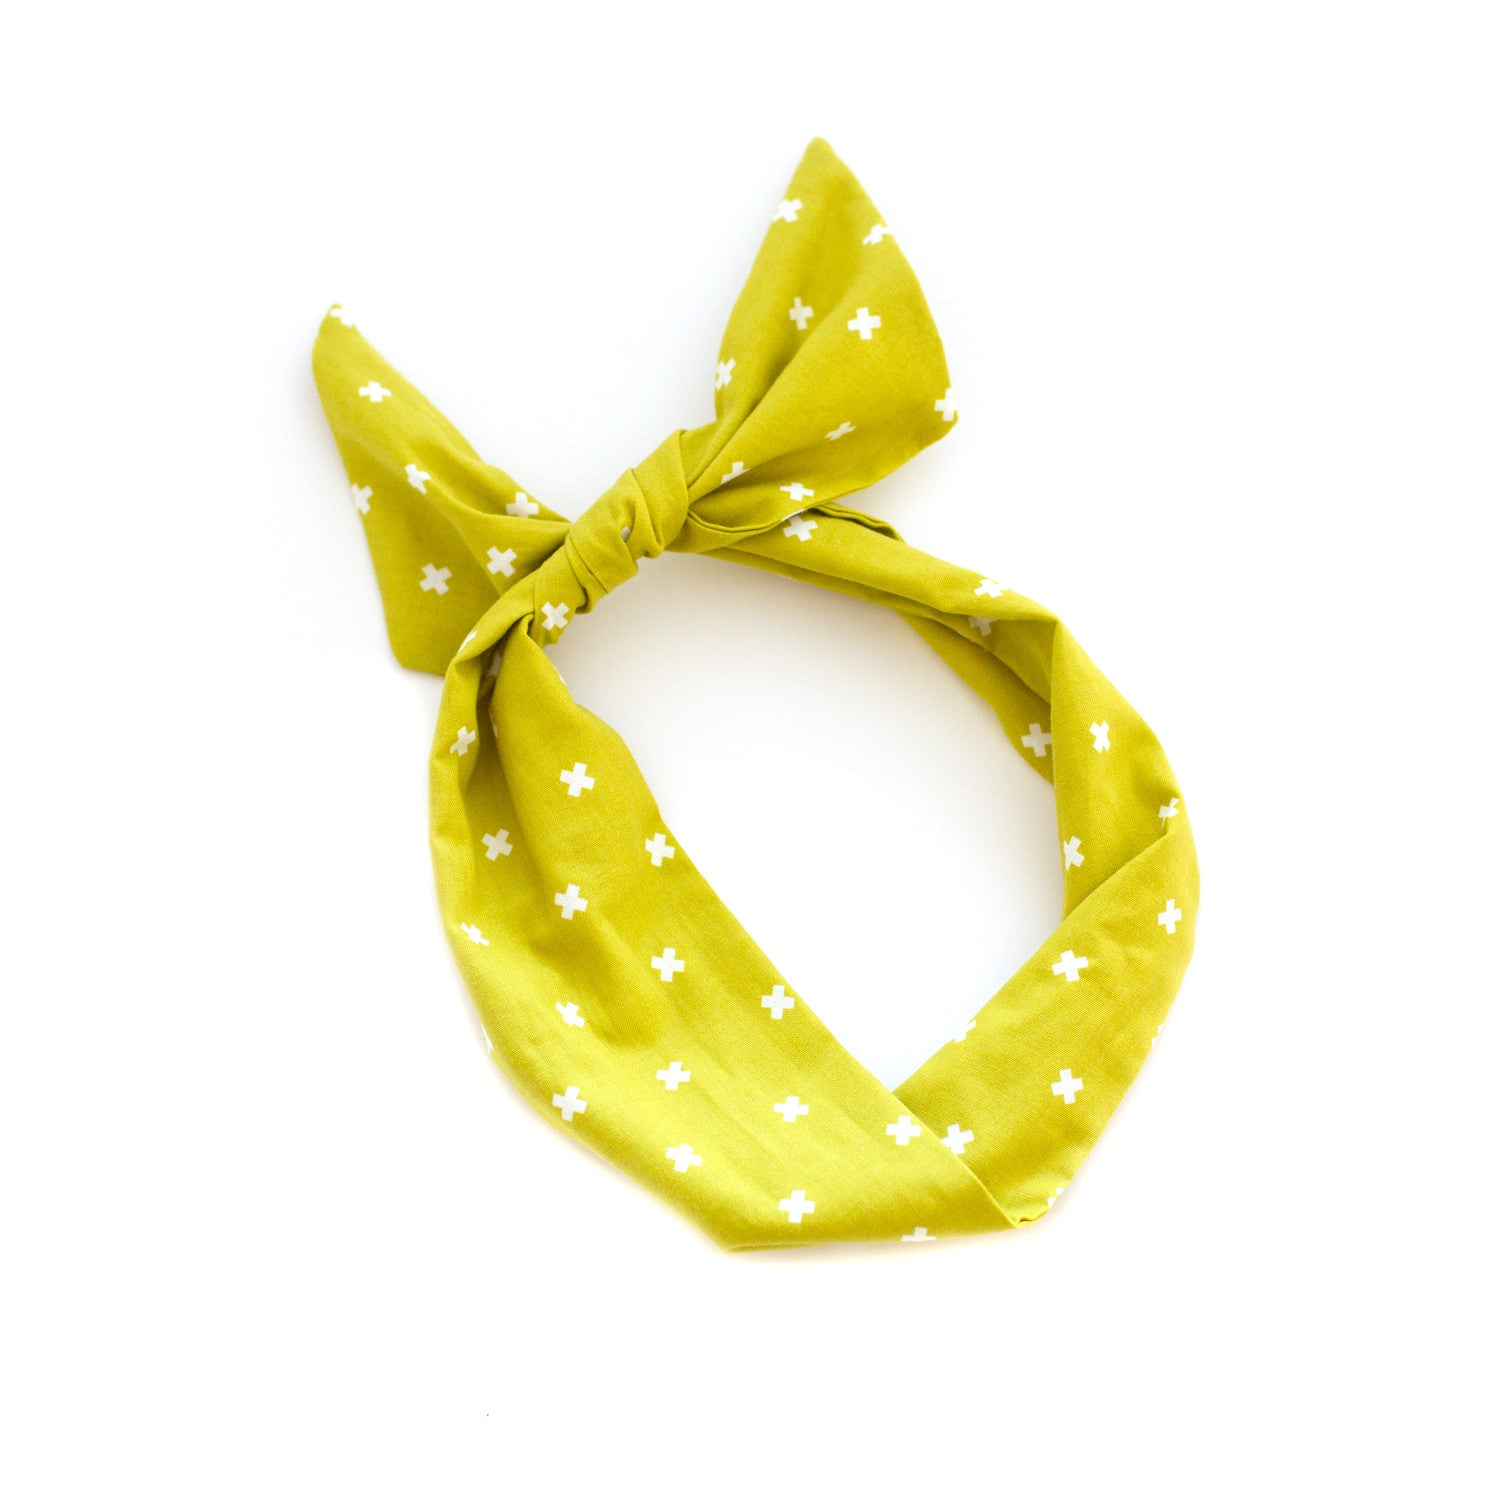 mustard plus sign wire headband scarf by mane message hair accessoires